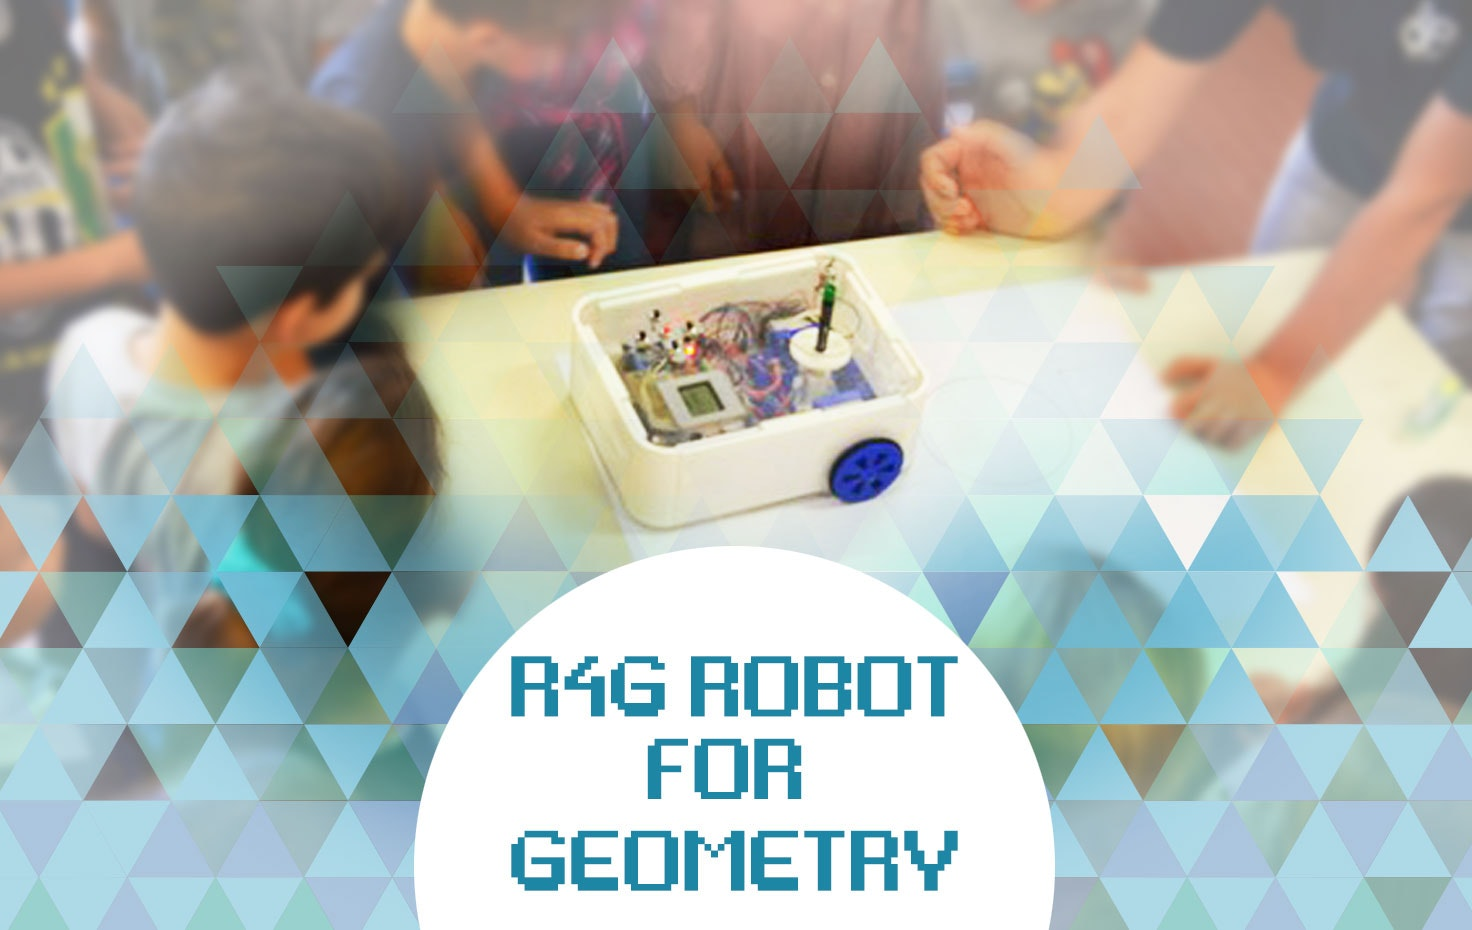 R4G Robot for Geometry